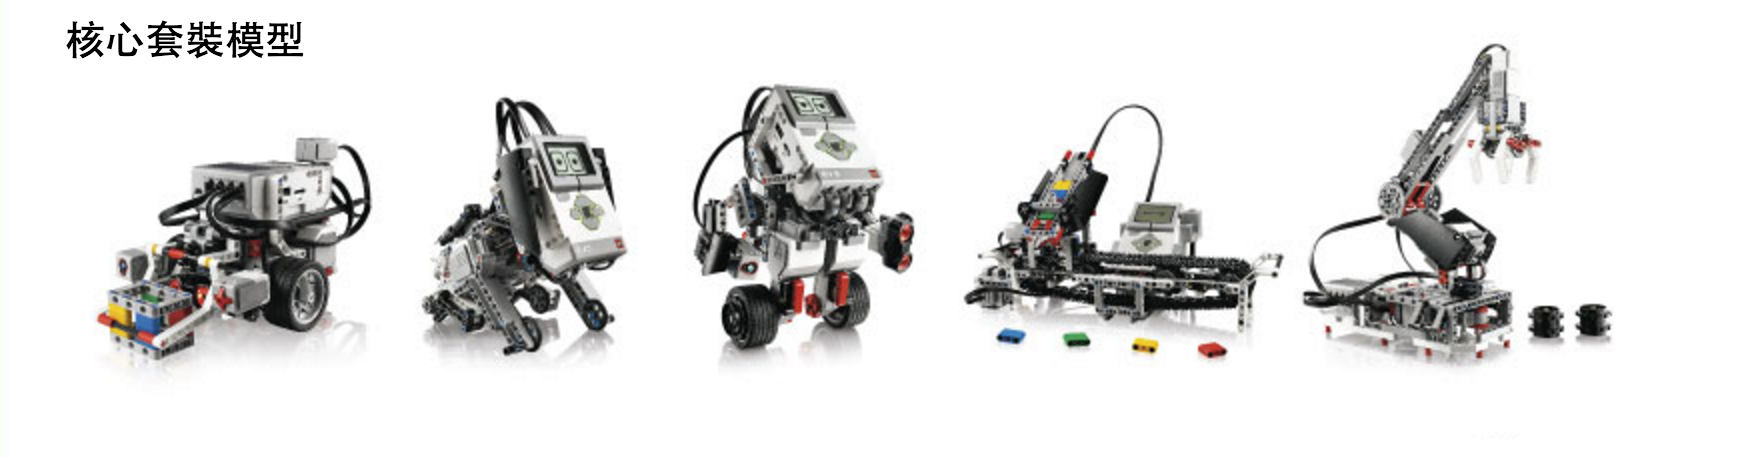 lego EV3 Education Core Set 教育核心套件 45544